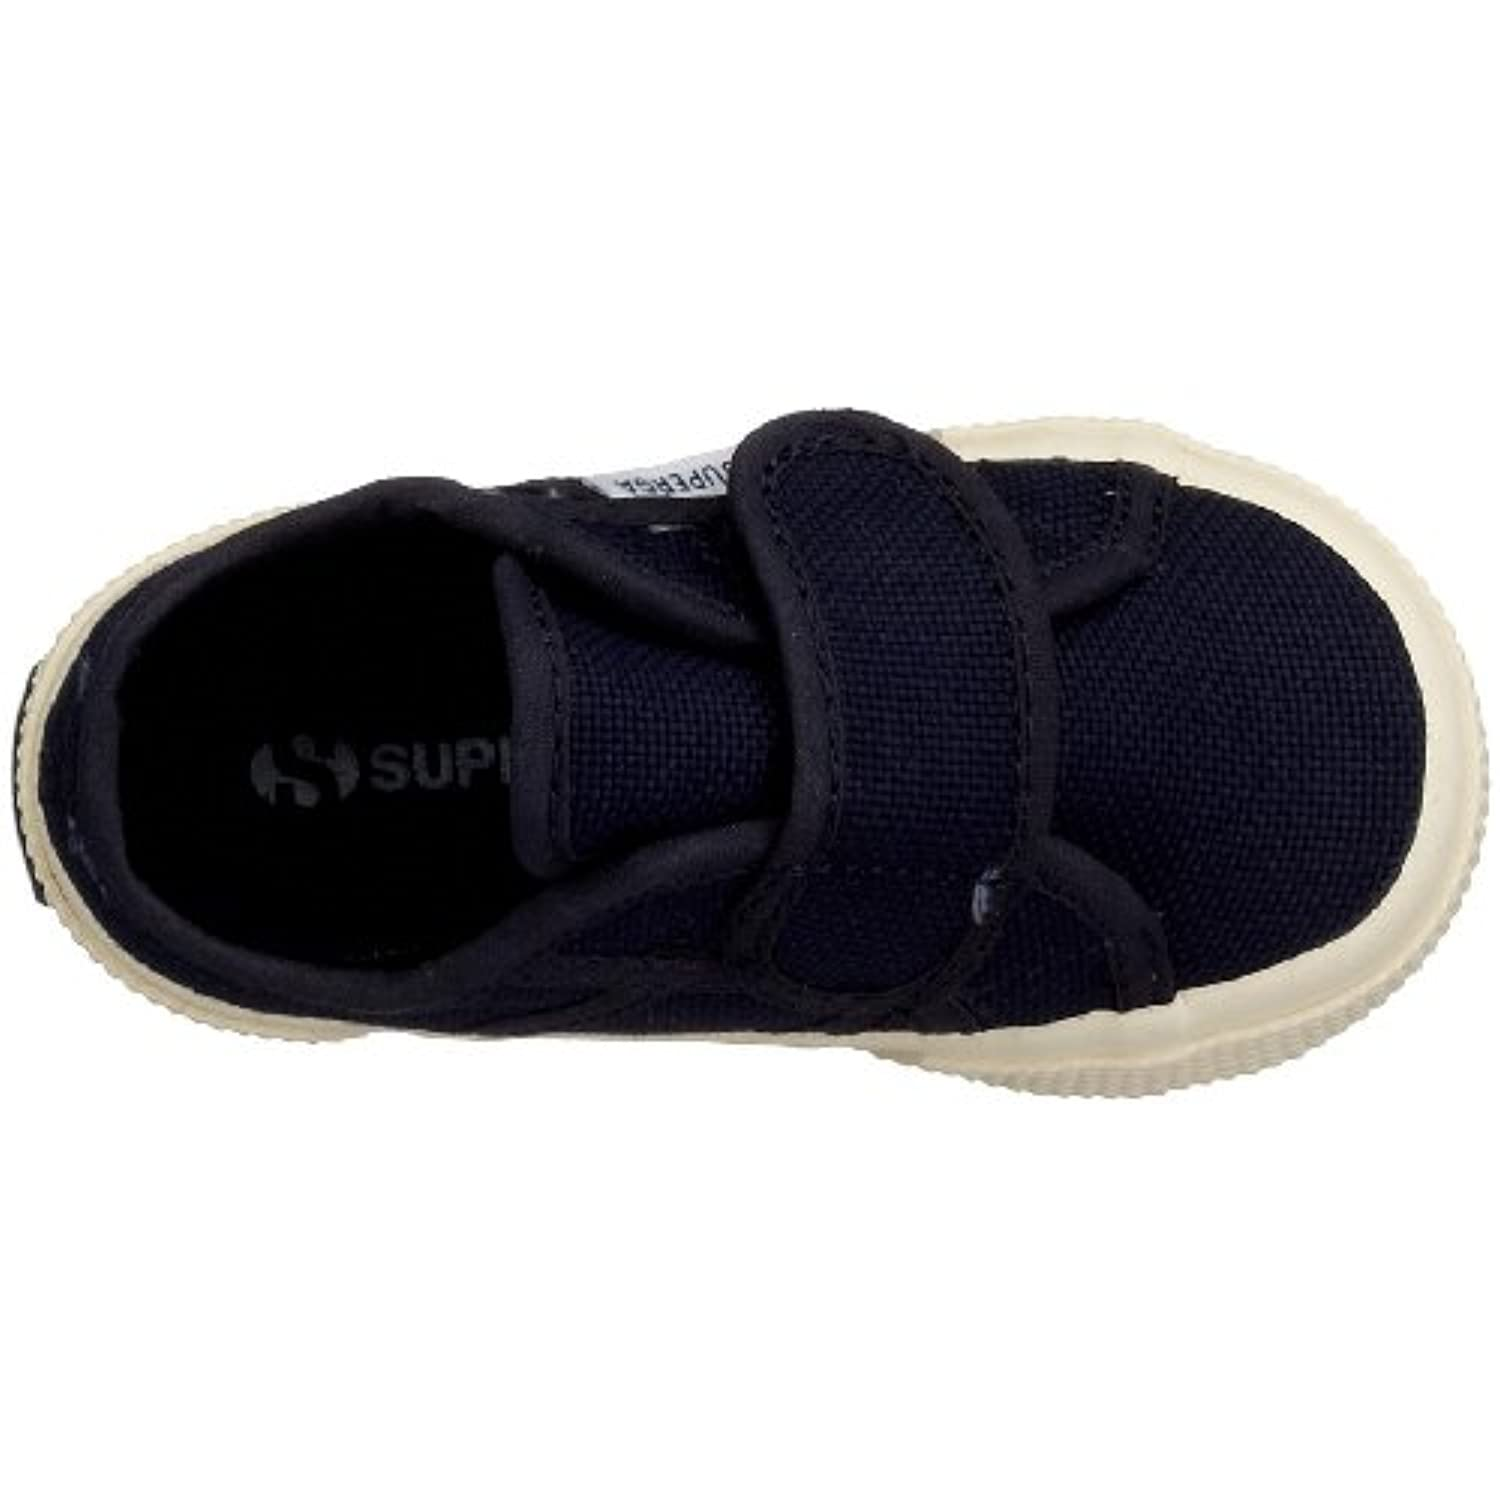 Superga 2750 Bvel, Unisex Kids' Low-Top Sneakers, Blue (Navy), 2 Child UK (18 EU)